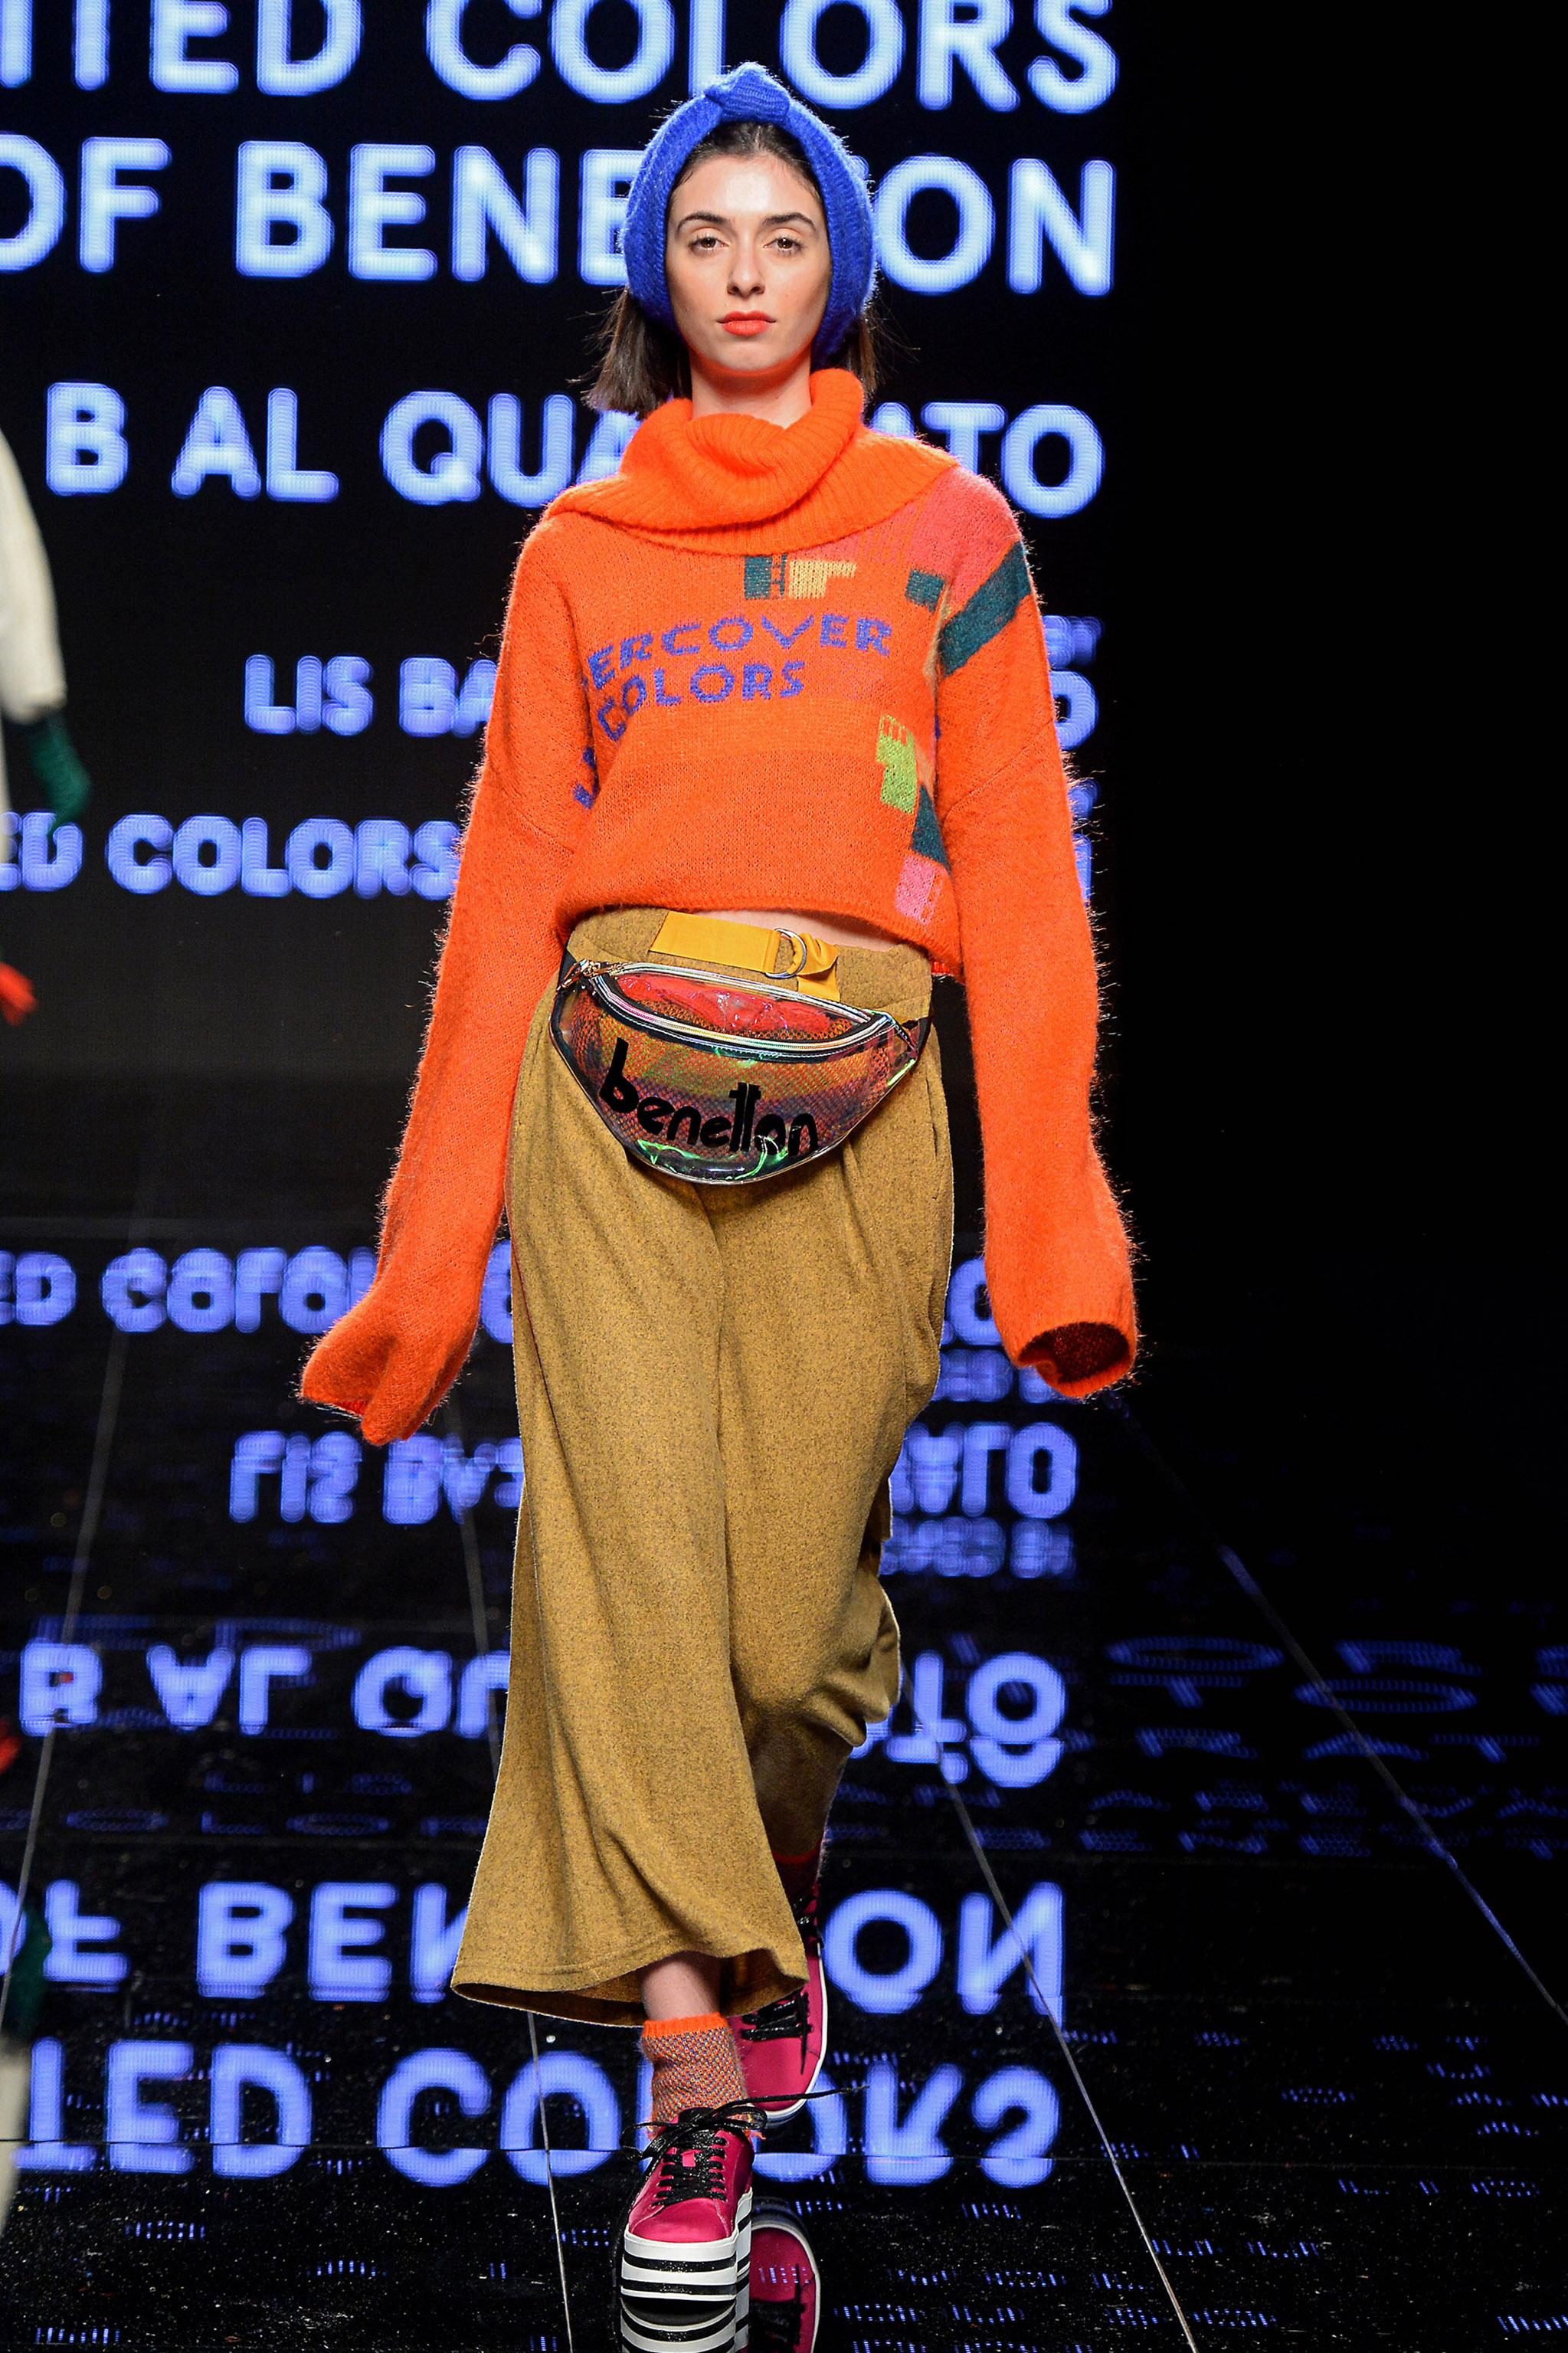 UNITED COLORS OF BENETTON designed by  Lis Bazan Arevalo25.jpg